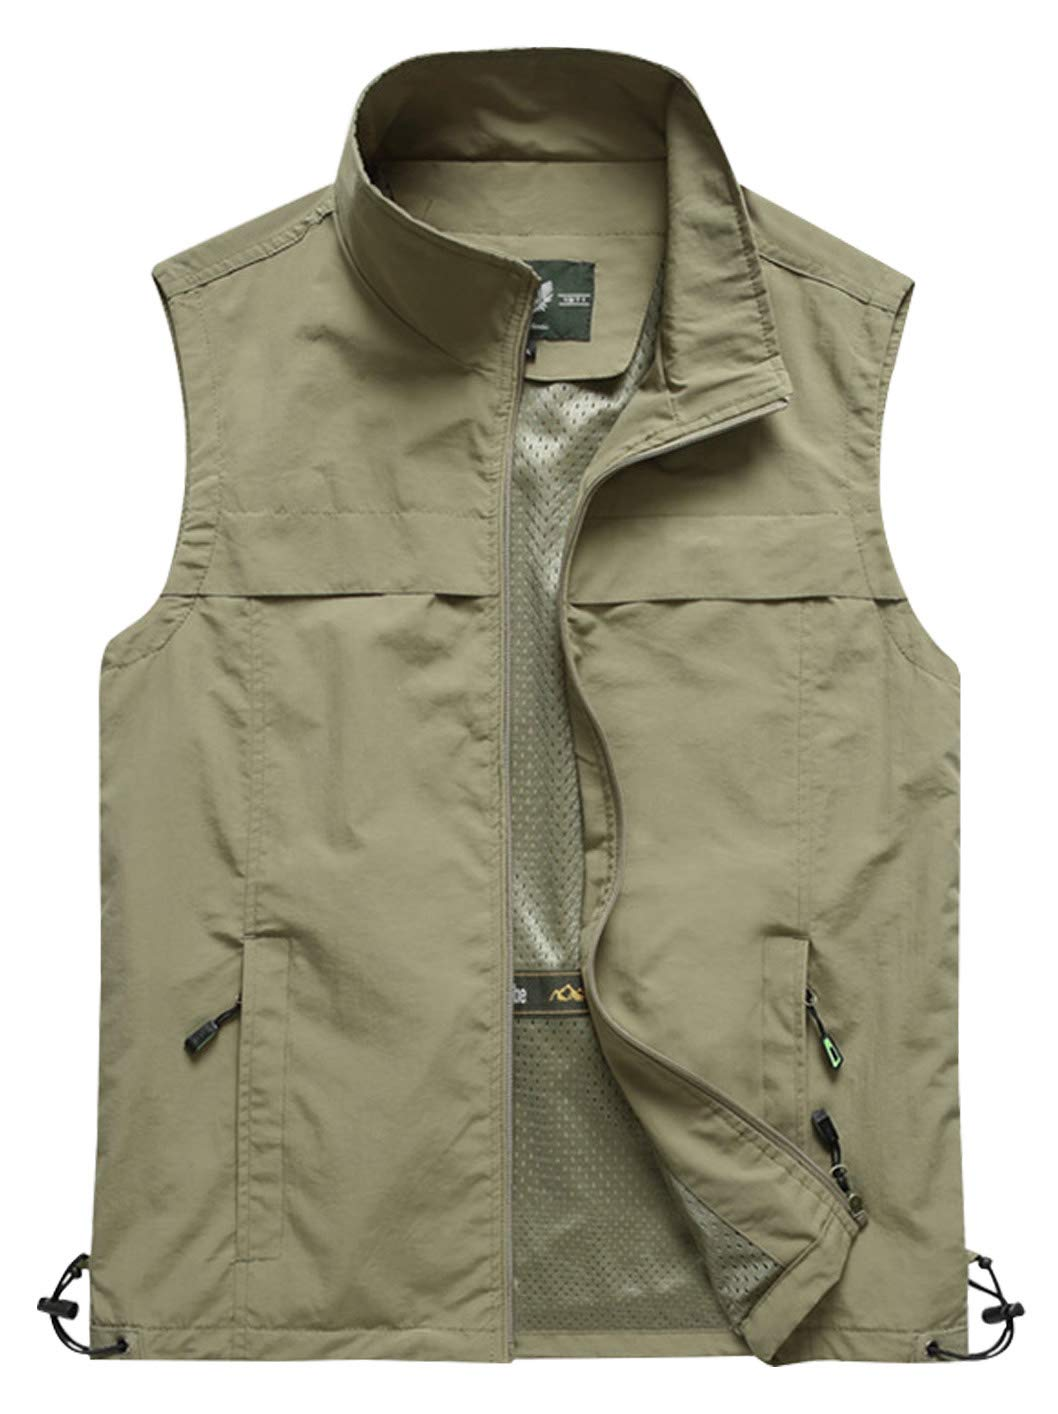 Gihuo Men's Lightweight Quick Dry Outdoor Multi Pockets Fishing Vest (Large, Style3-Khaki) by Gihuo